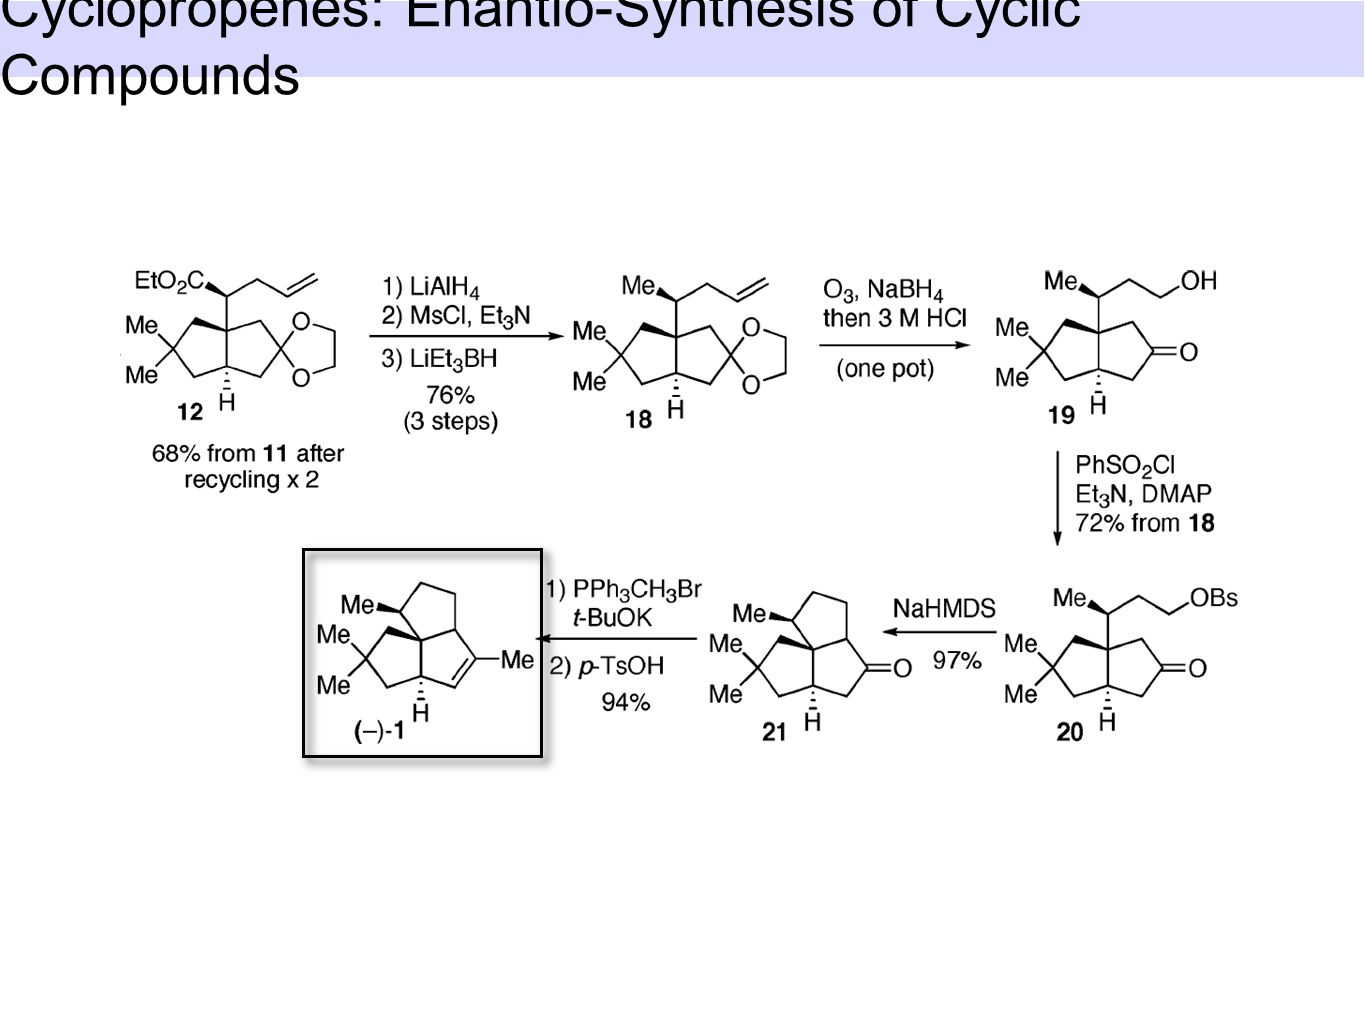 1.Syntheses of cyclopropenes 1.1 Racemic syntheses 1.2 Enantioselective syntheses 2.